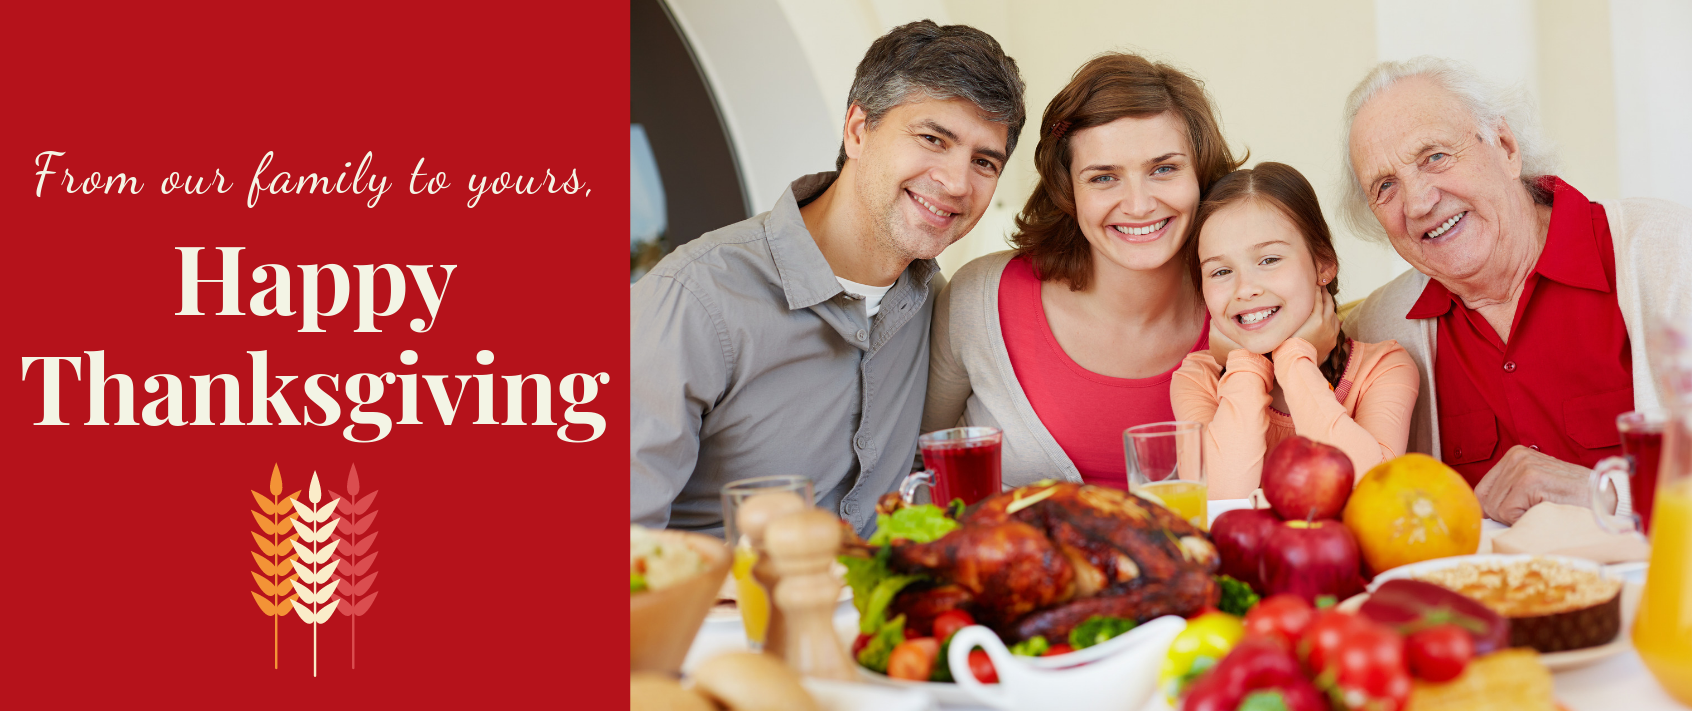 American Thanksgiving | American made clothing |All USA Clothing